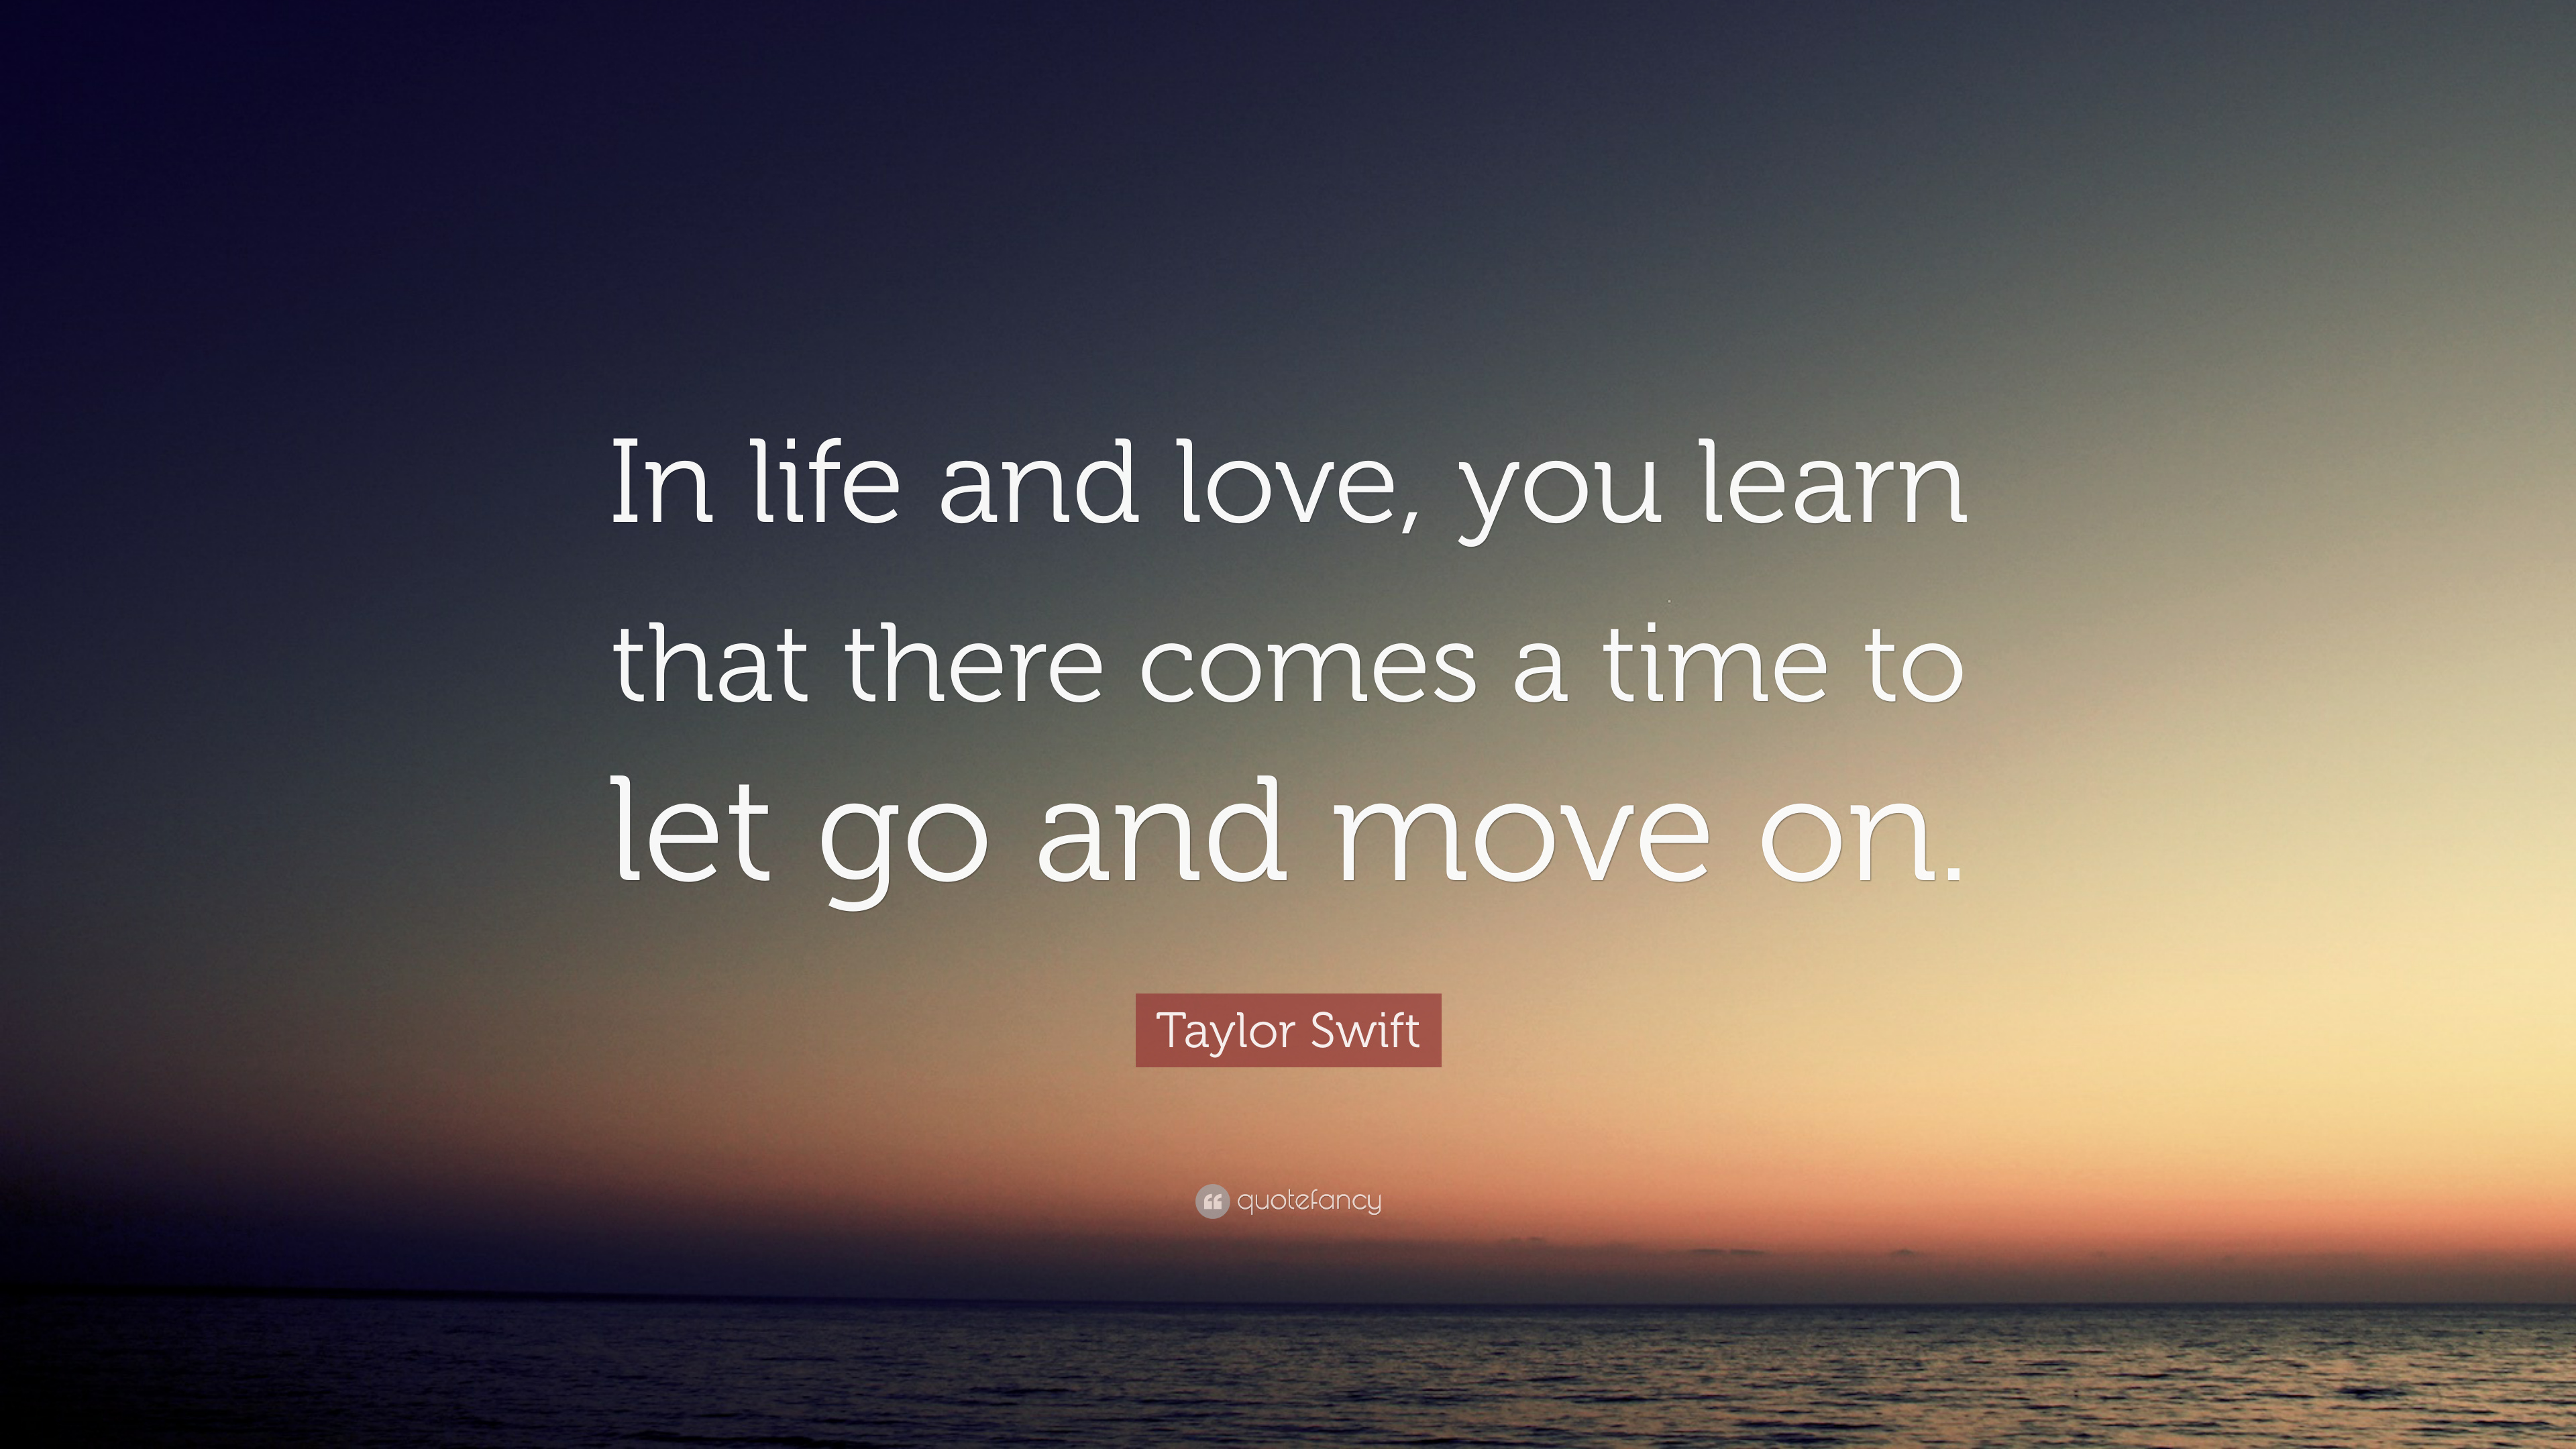 Taylor Swift Quote In Life And Love You Learn That There Comes A